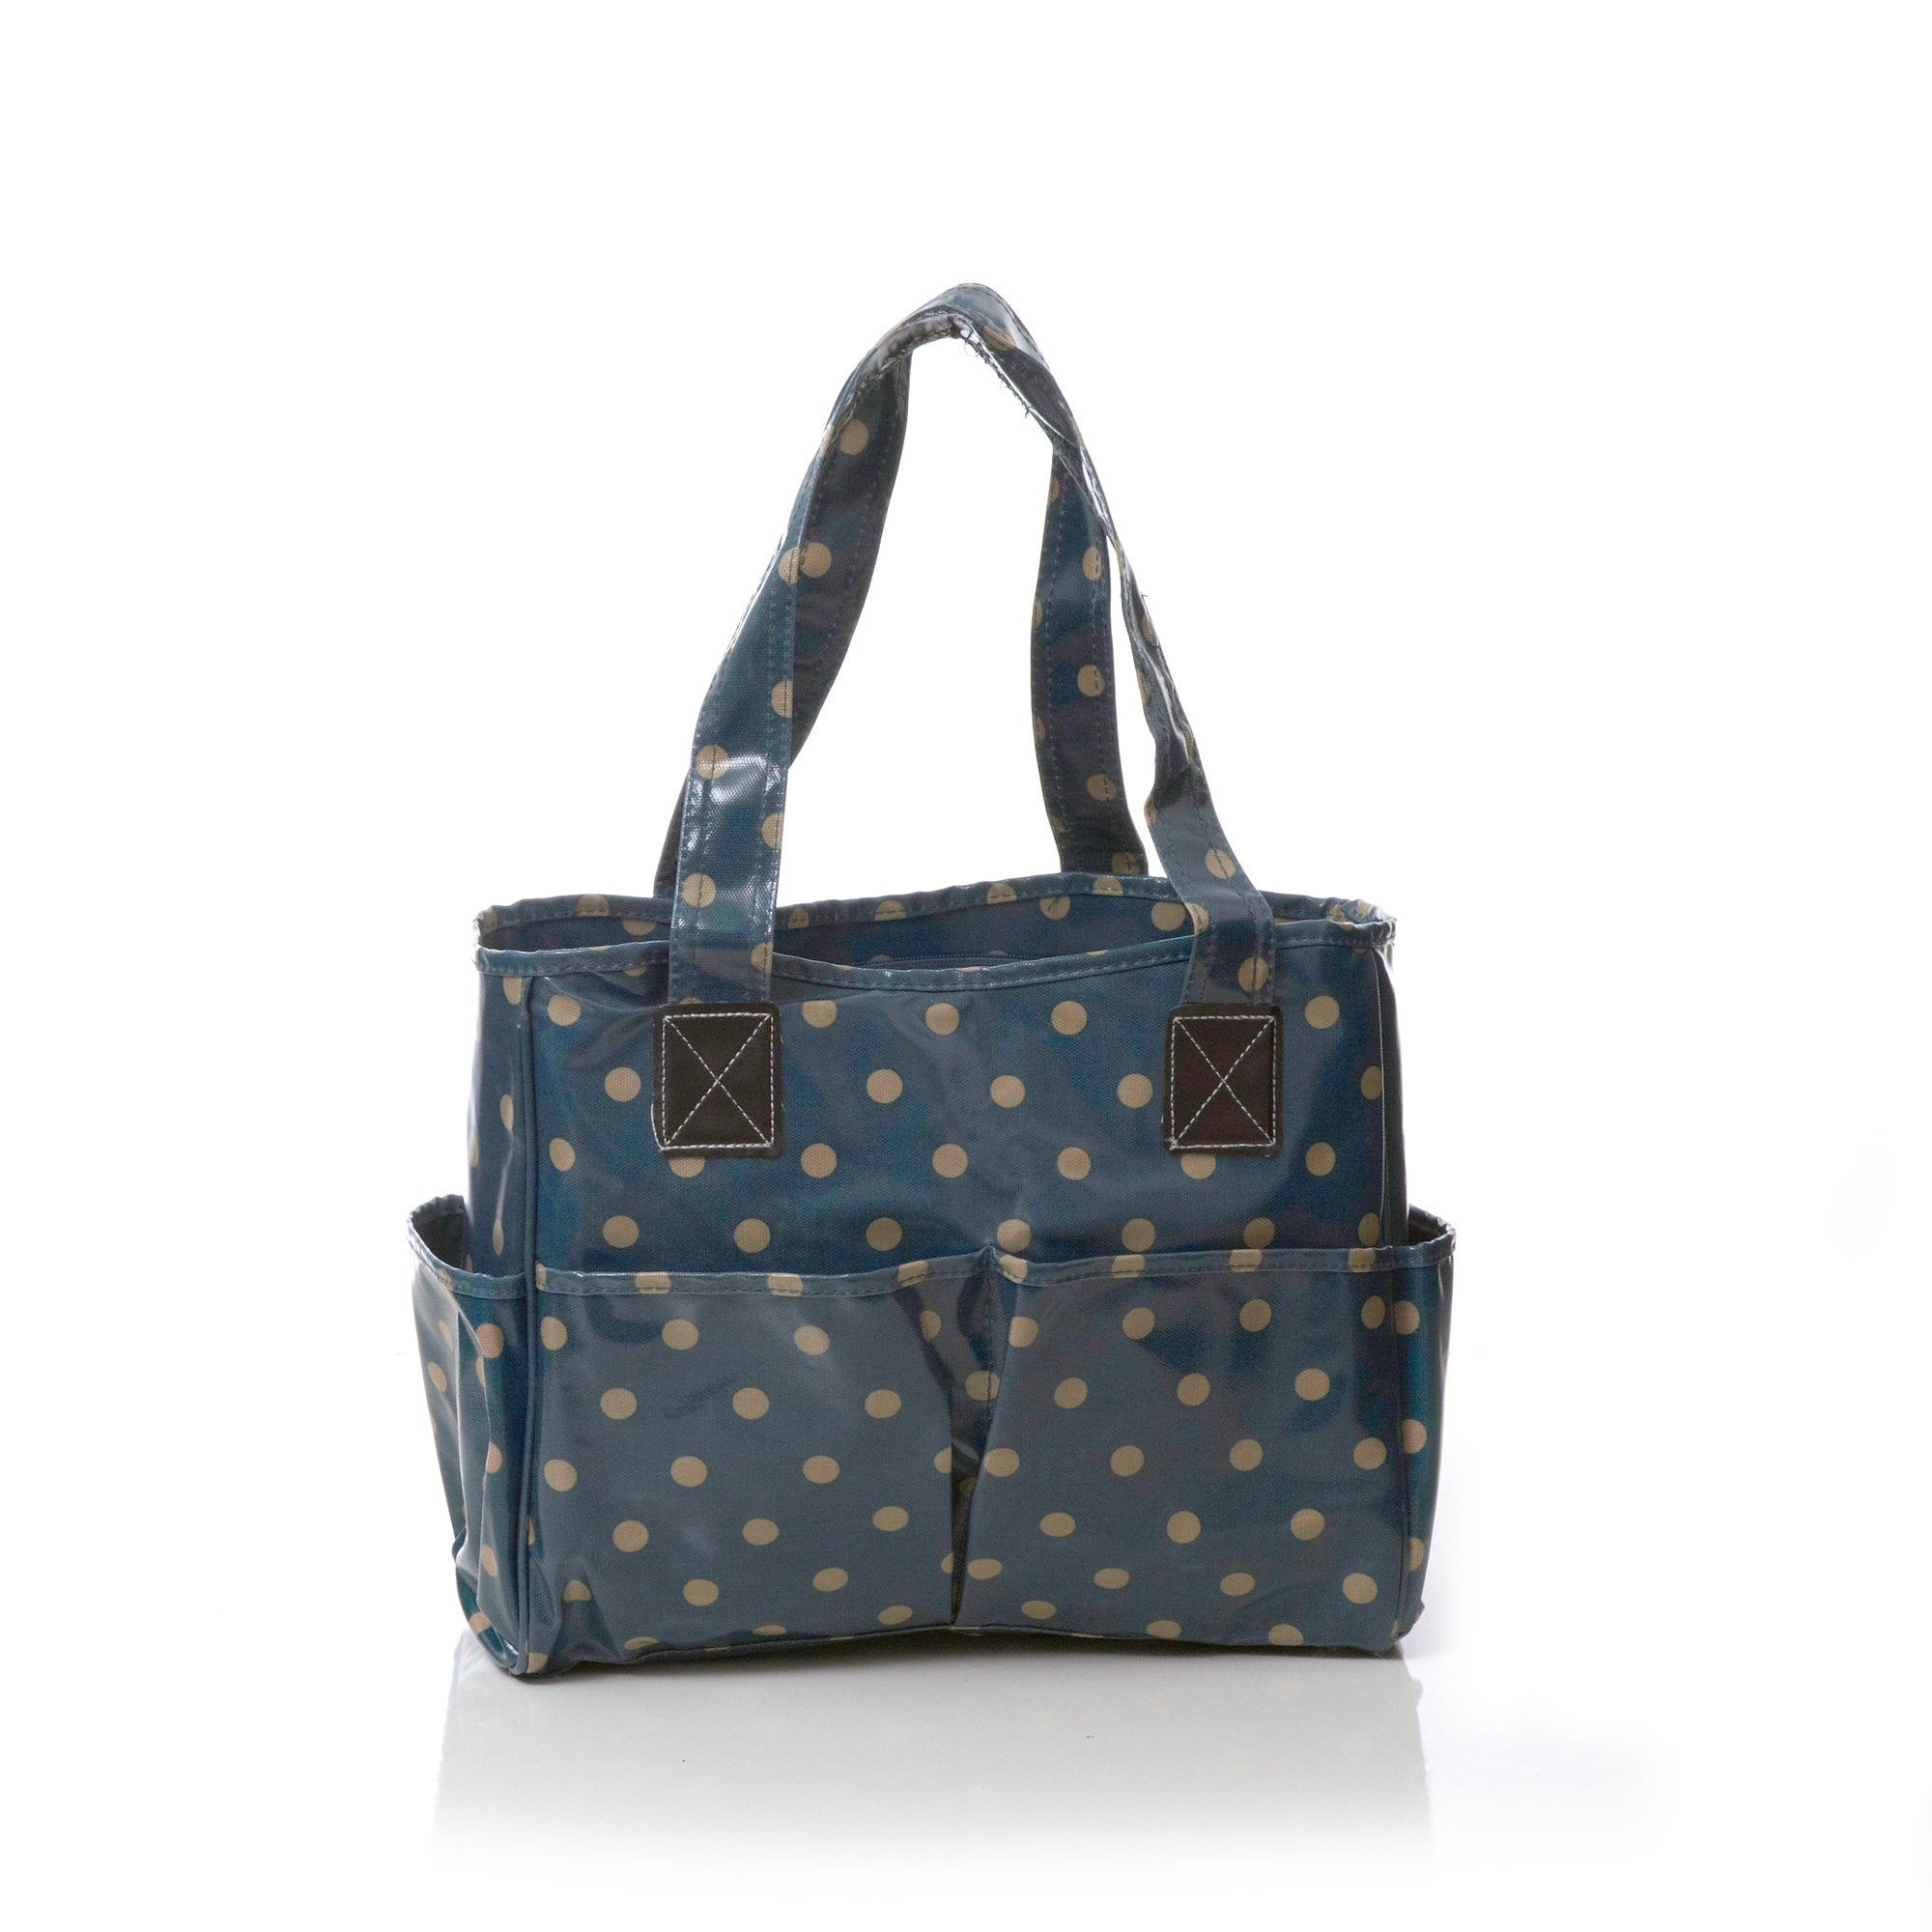 Vintage Polka Dot Collection Tote Bag